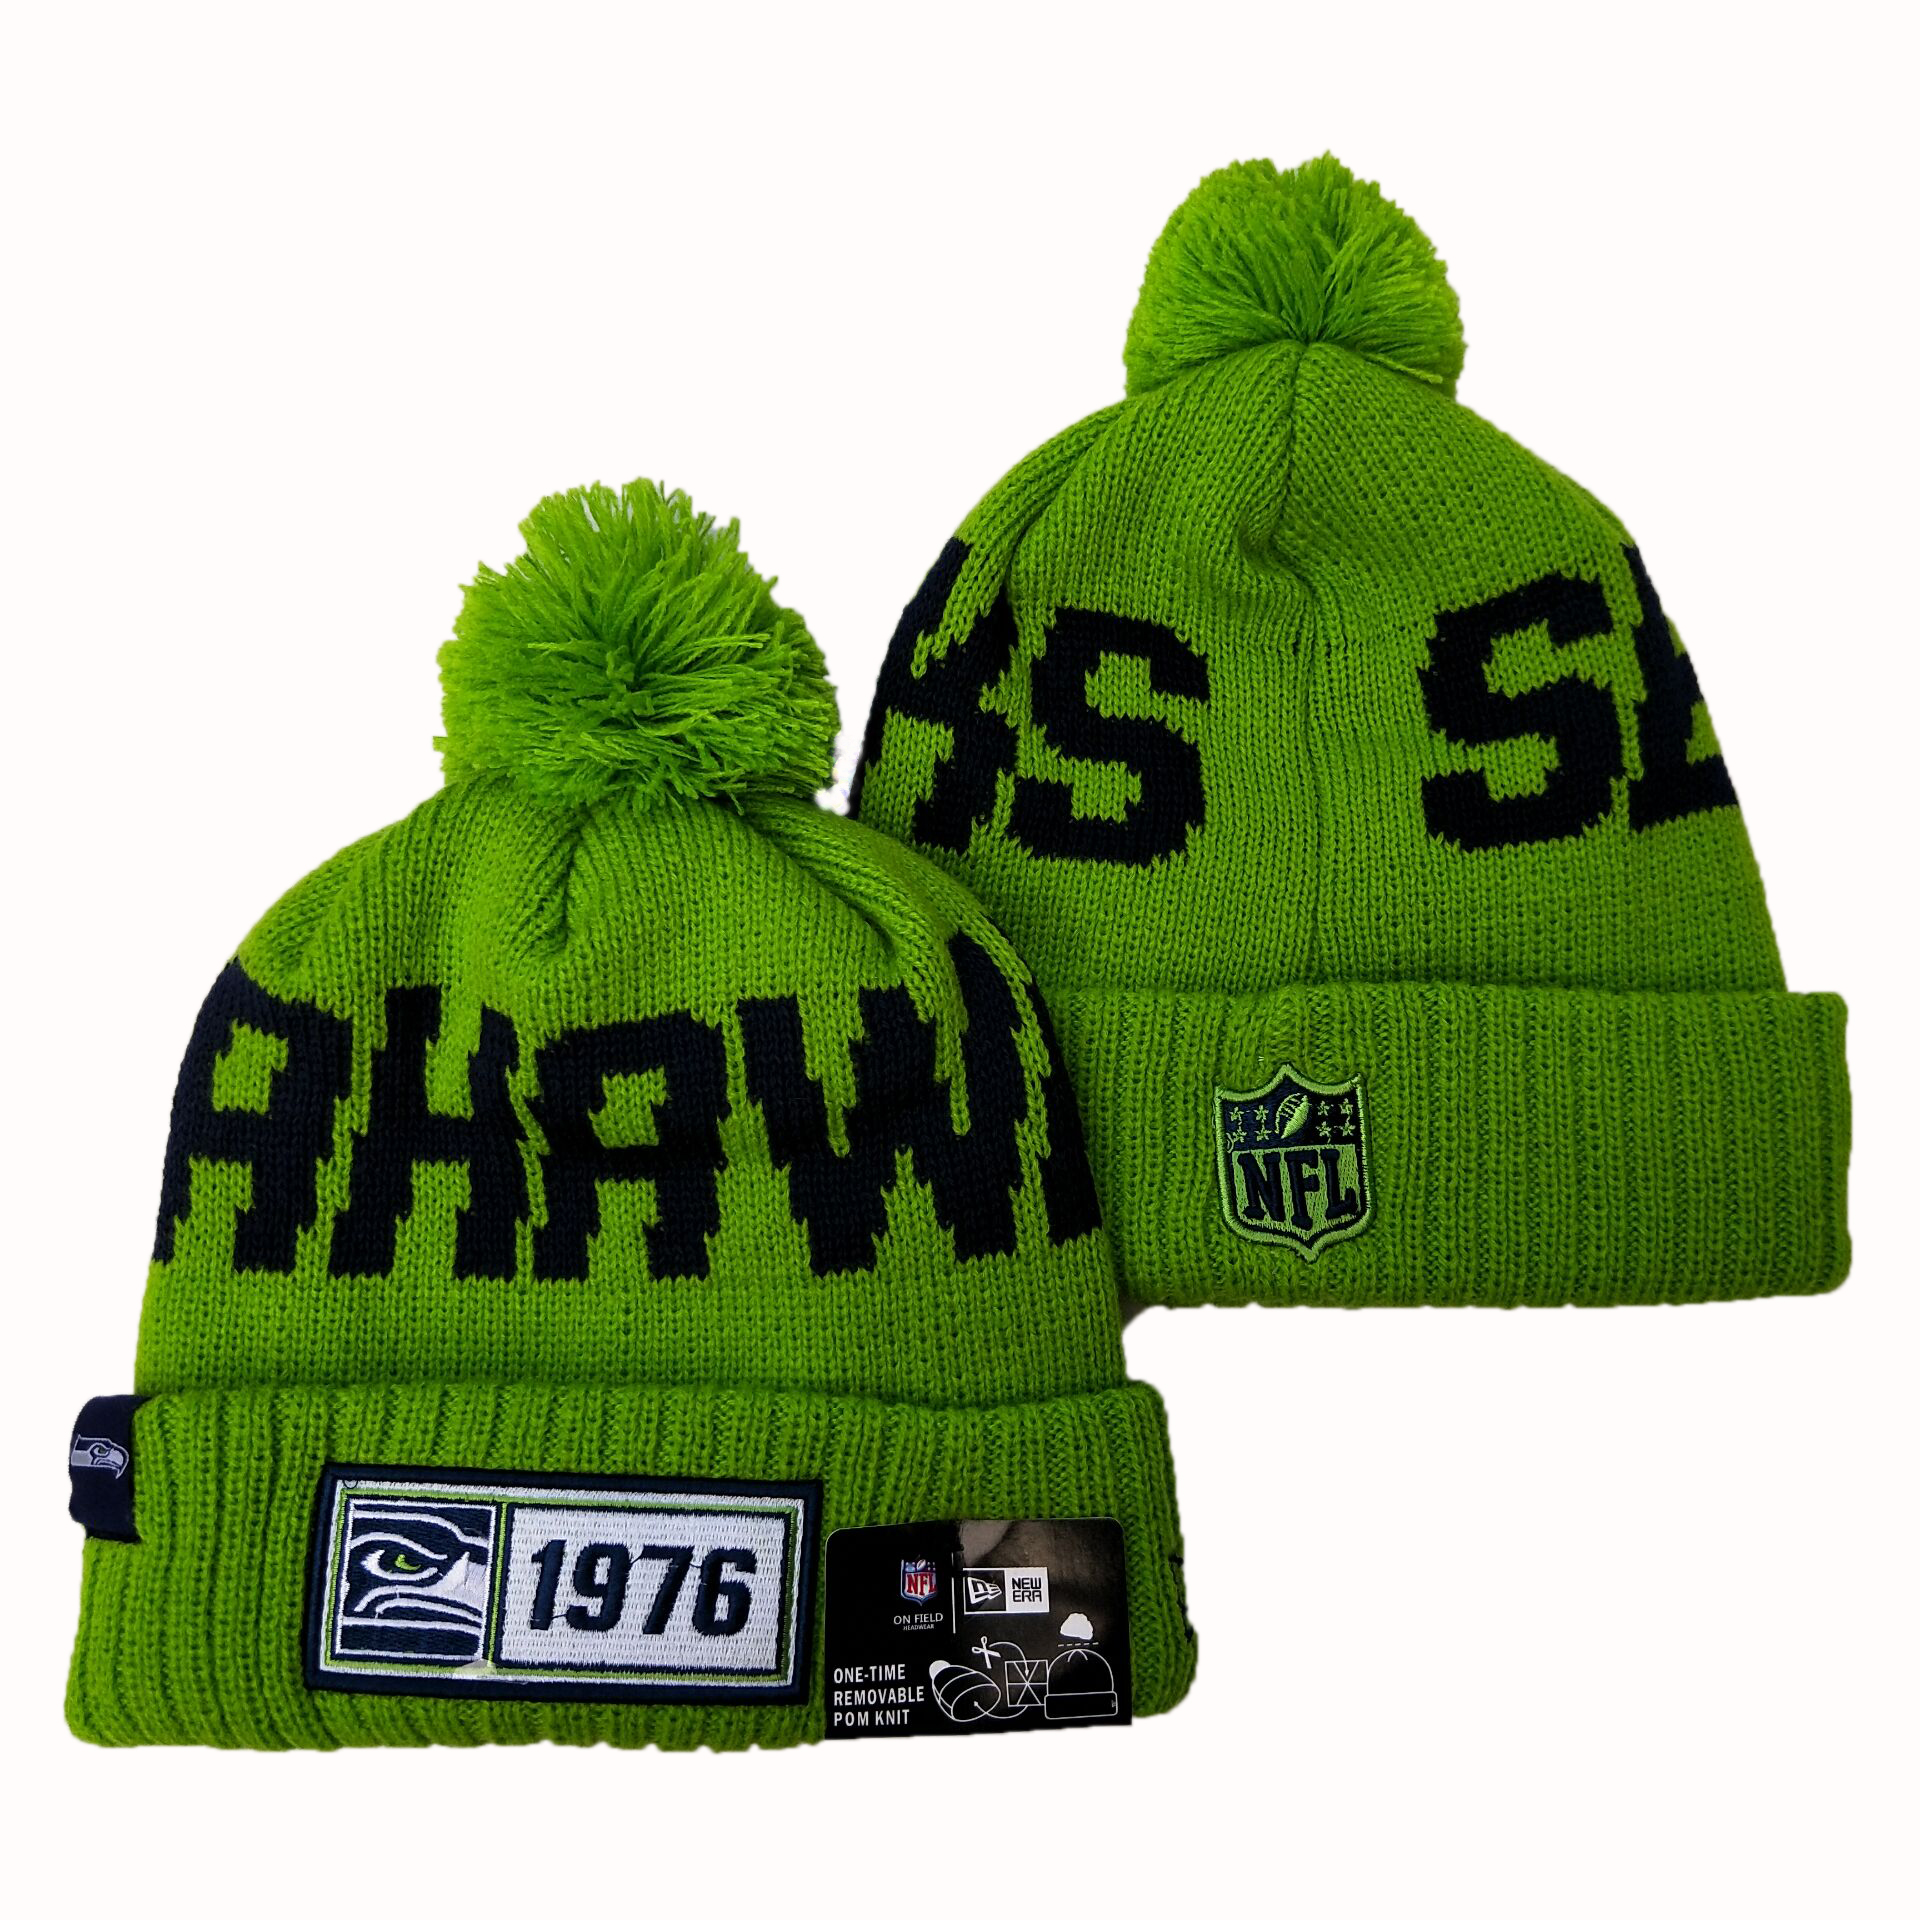 NFL Seattle Seahawks New Era 2019 Sideline Road Reverse Sport Knit Hats 049